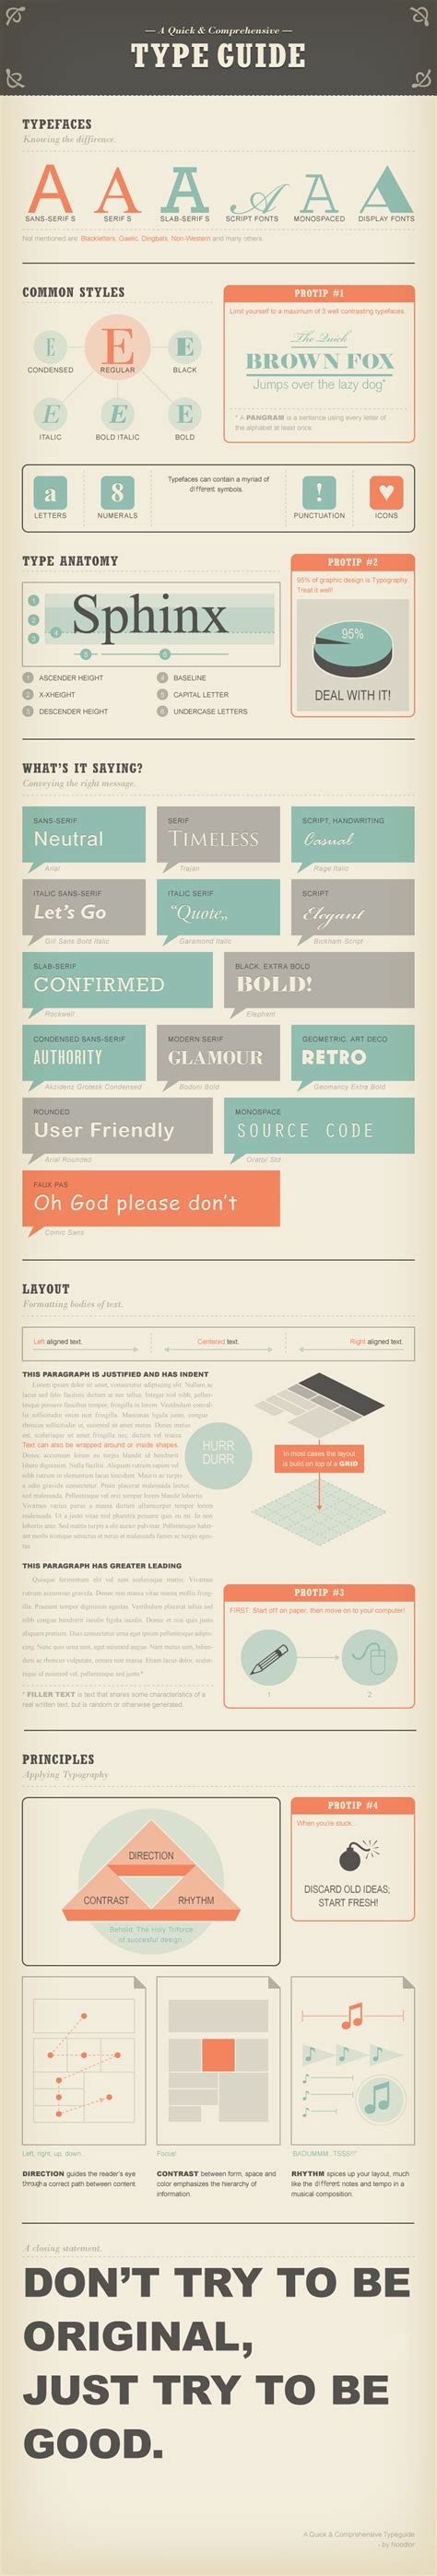 typography guide what different types of fonts and how to use them